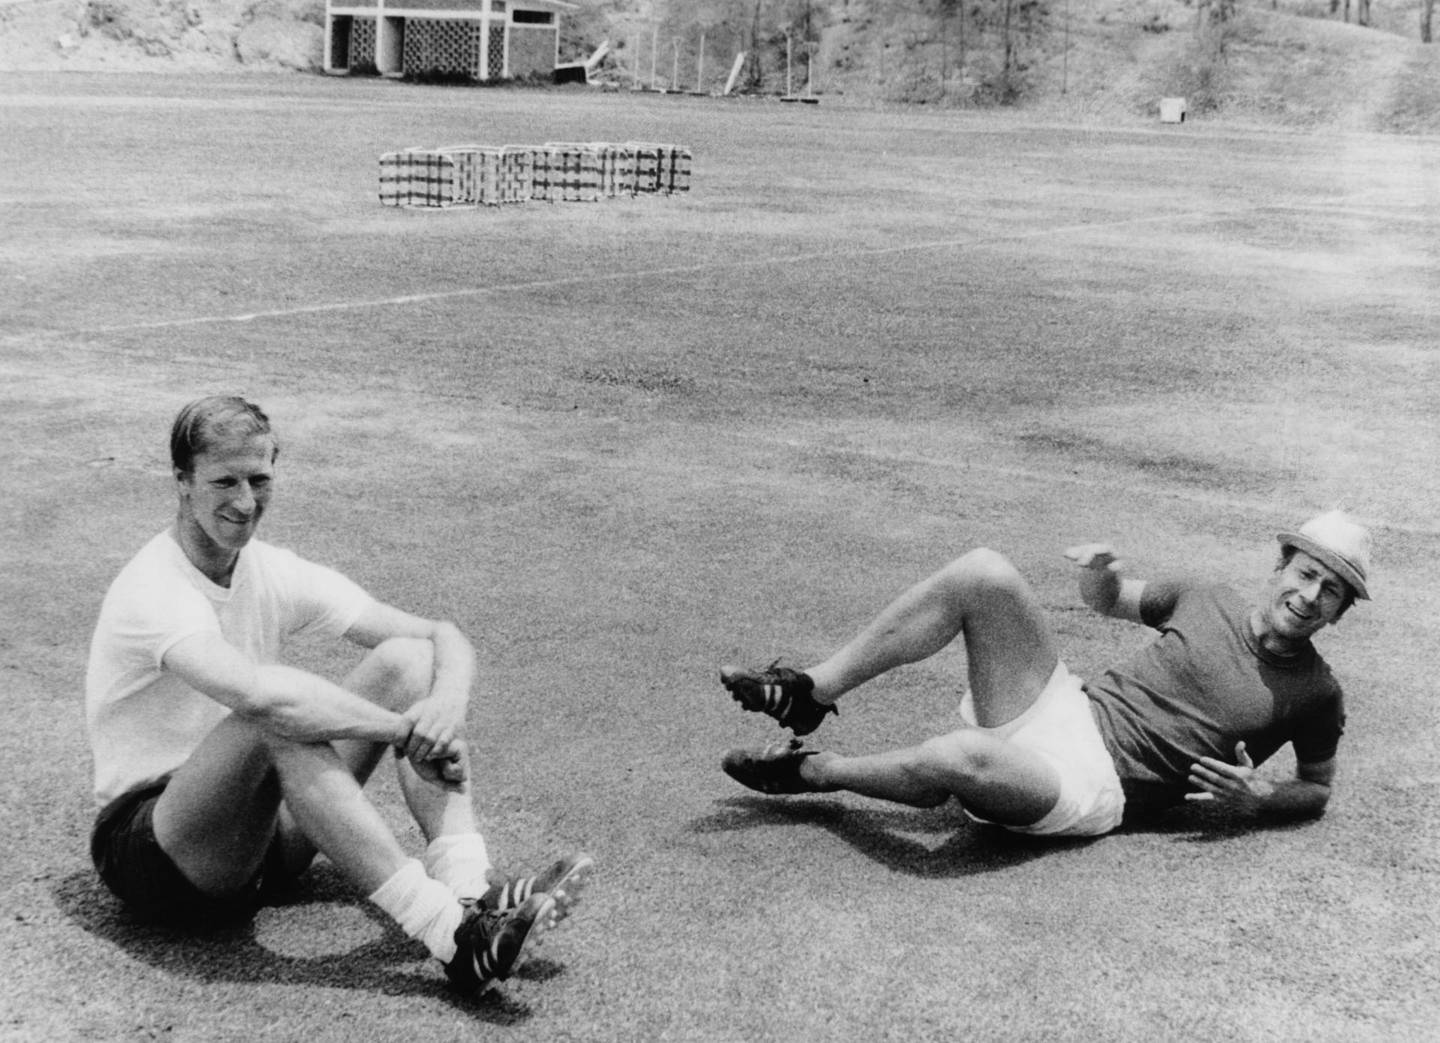 England players Jack (left) and Bobby Charlton relaxing during training at the World Cup, Mexico City, May 1970. (Photo by Keystone/Hulton Archive/Getty Images) FILE PHOTO